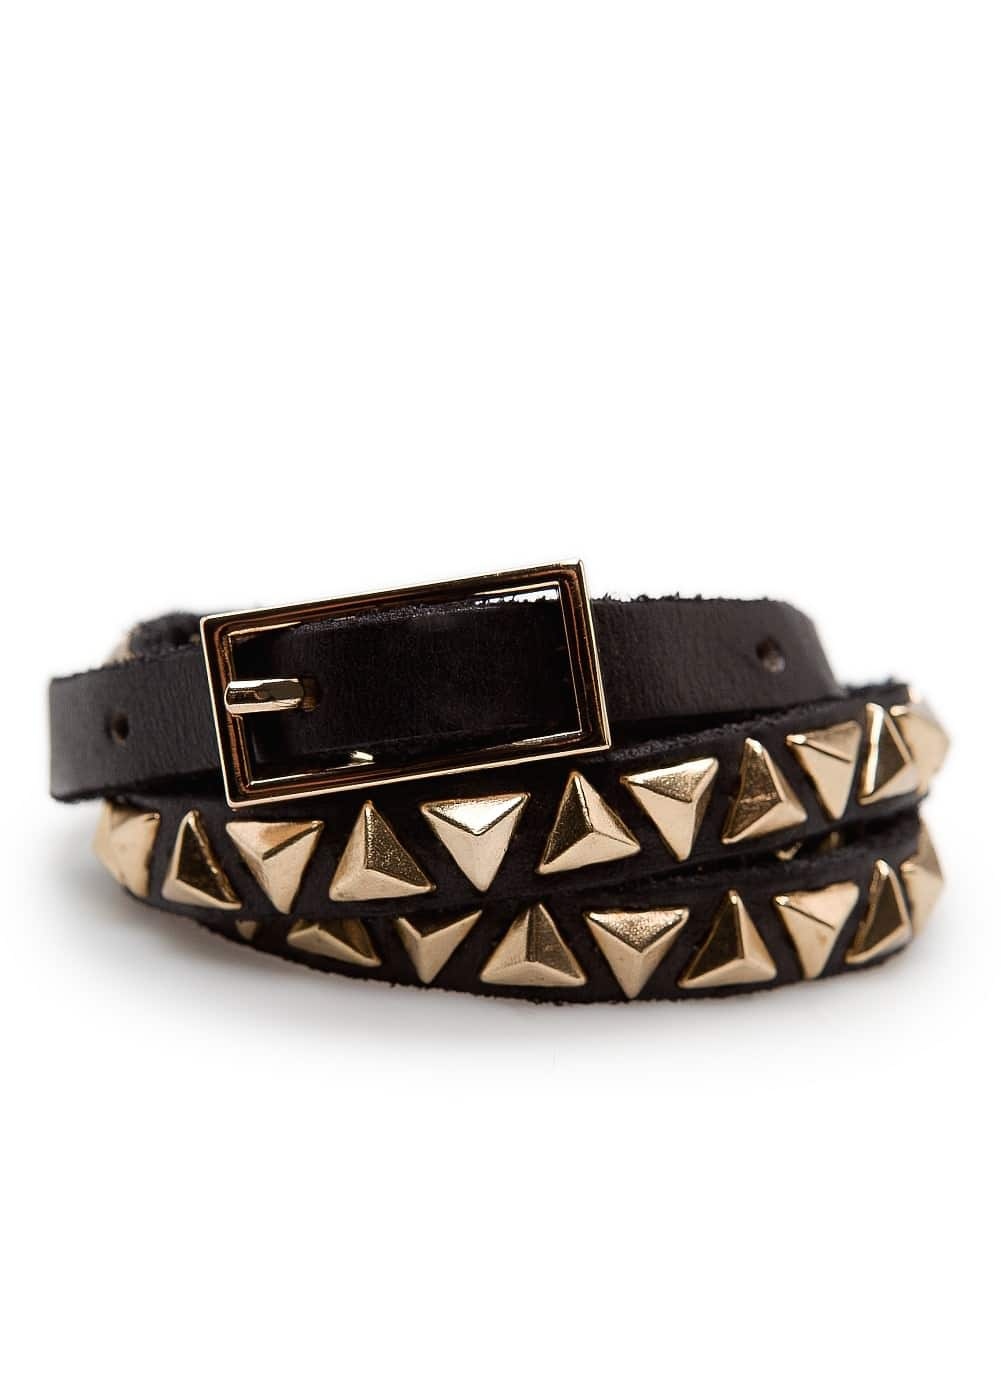 Pyramid studs leather belt